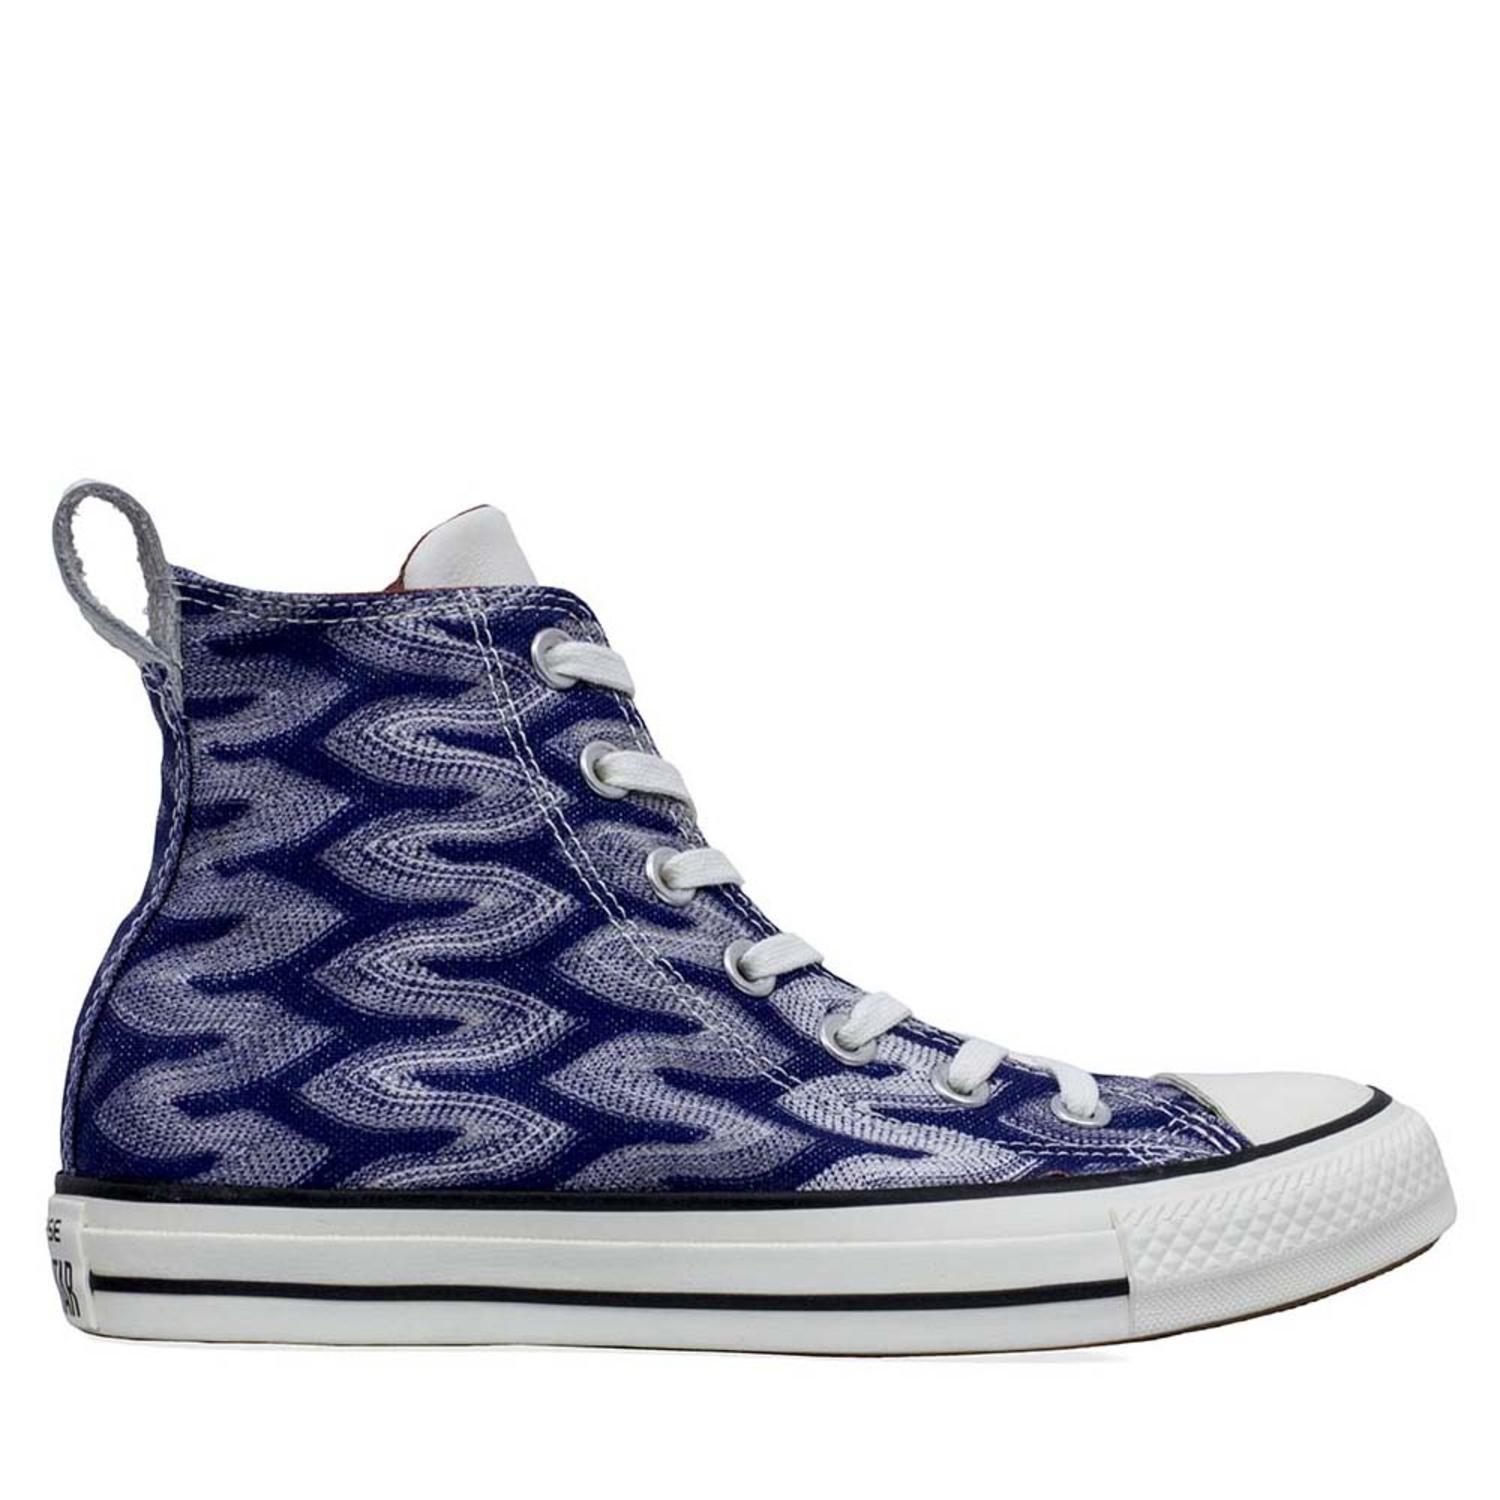 37c095ecde2b Converse Women s Chuck Taylor All Star Missoni Hi Casual Sneakers from  Finish Line